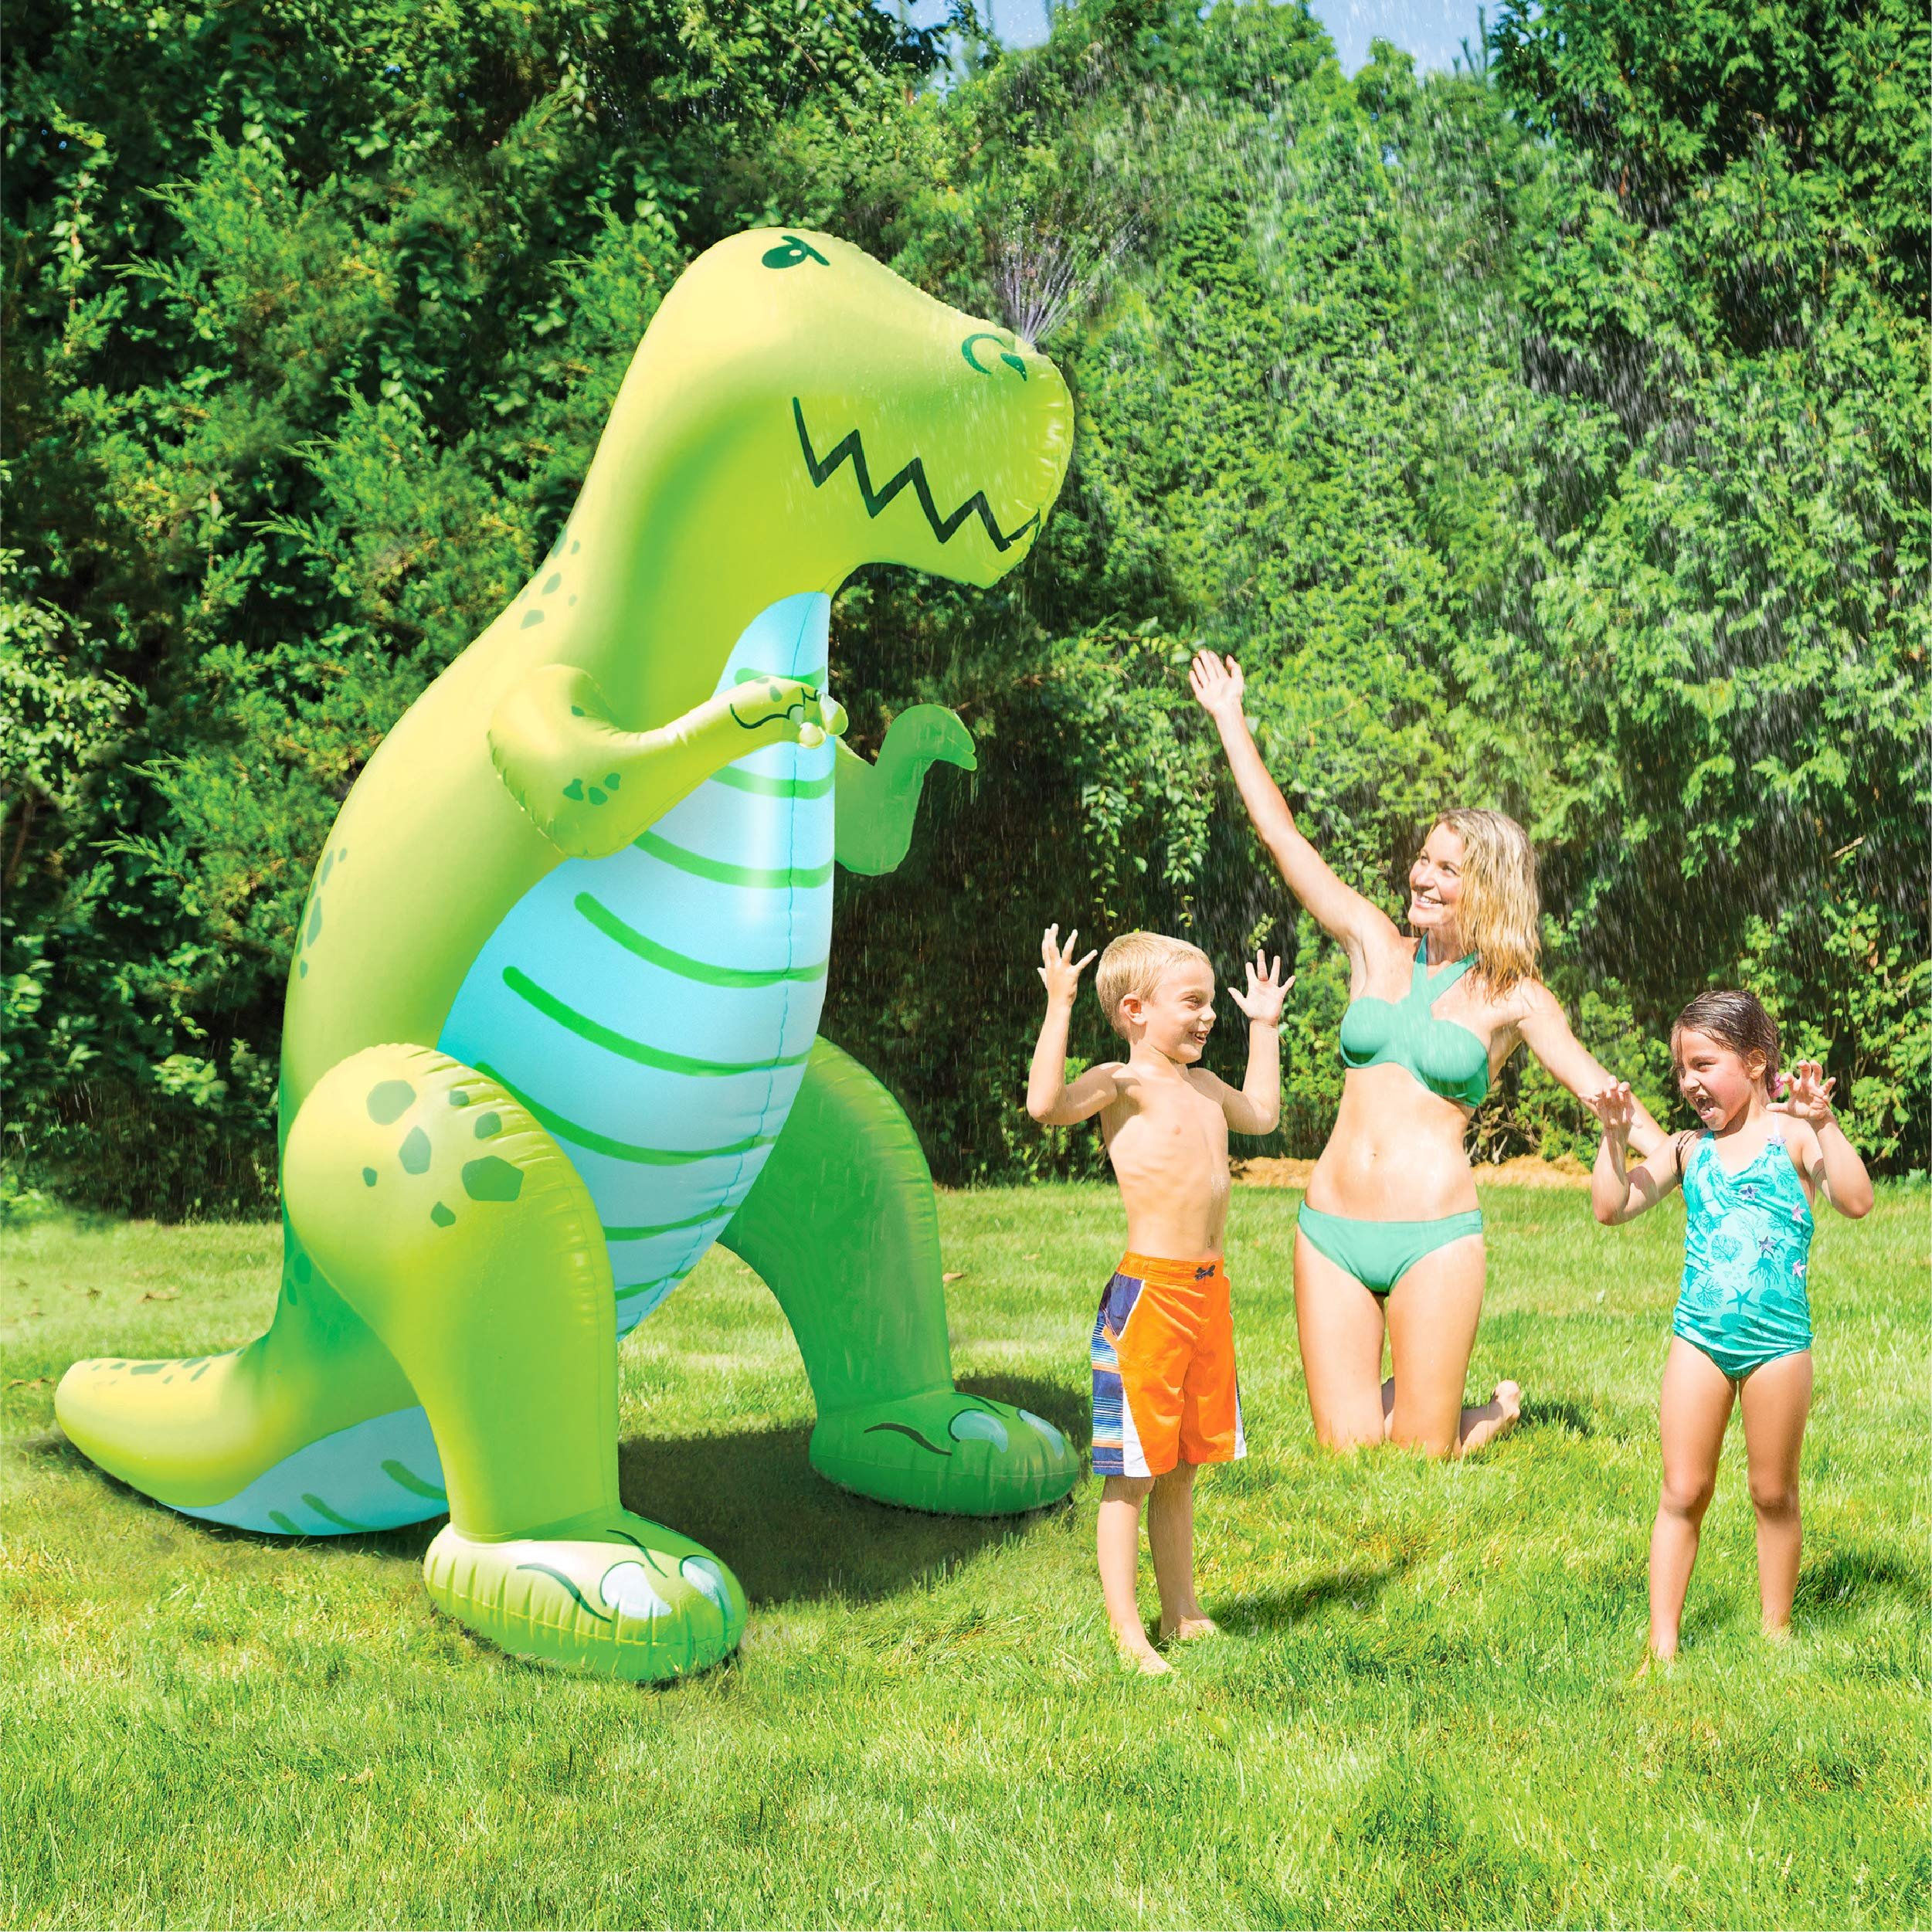 BigMouth Inc. Ginormous Inflatable Green Dinosaur Yard Summer Sprinkler, Stands Over 6 Feet Tall, Perfect for Summer Fun by BigMouth Inc (Image #8)